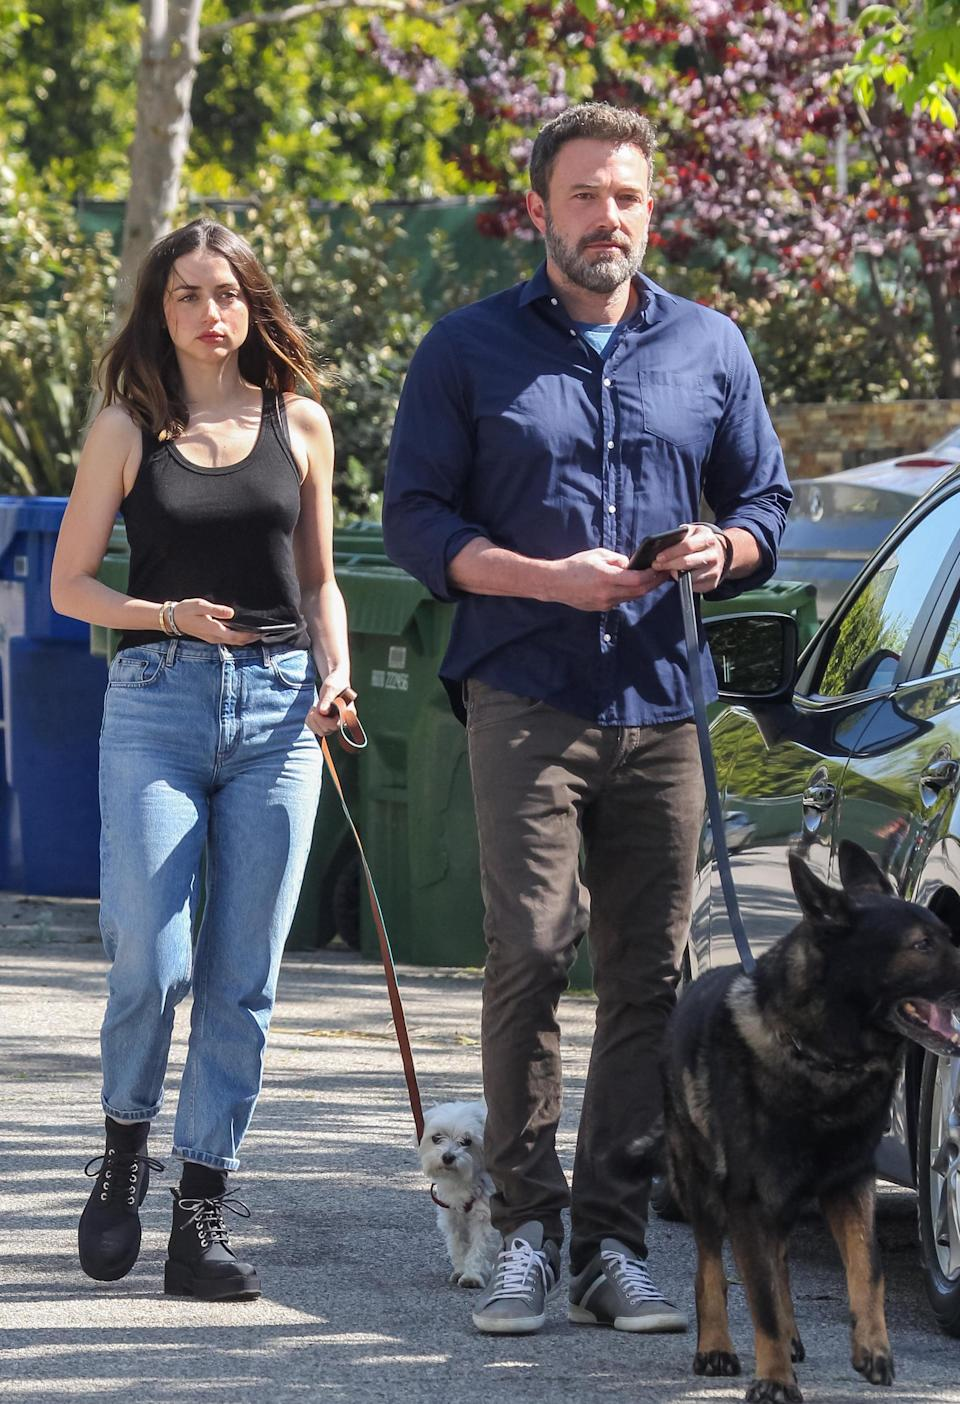 """<p><a href=""""https://www.popsugar.com/celebrity/ben-affleck-ana-de-armas-break-up-48114270"""" class=""""link rapid-noclick-resp"""" rel=""""nofollow noopener"""" target=""""_blank"""" data-ylk=""""slk:Ana and Ben decided to part ways"""">Ana and Ben decided to part ways</a> after nearly one year together in January. According to <strong>People</strong>, Ana was the one who """"broke it off."""" A source added, """"Their relationship was complicated. Ana doesn't want to be Los Angeles-based and Ben obviously has to, since his kids live in Los Angeles.""""</p>"""